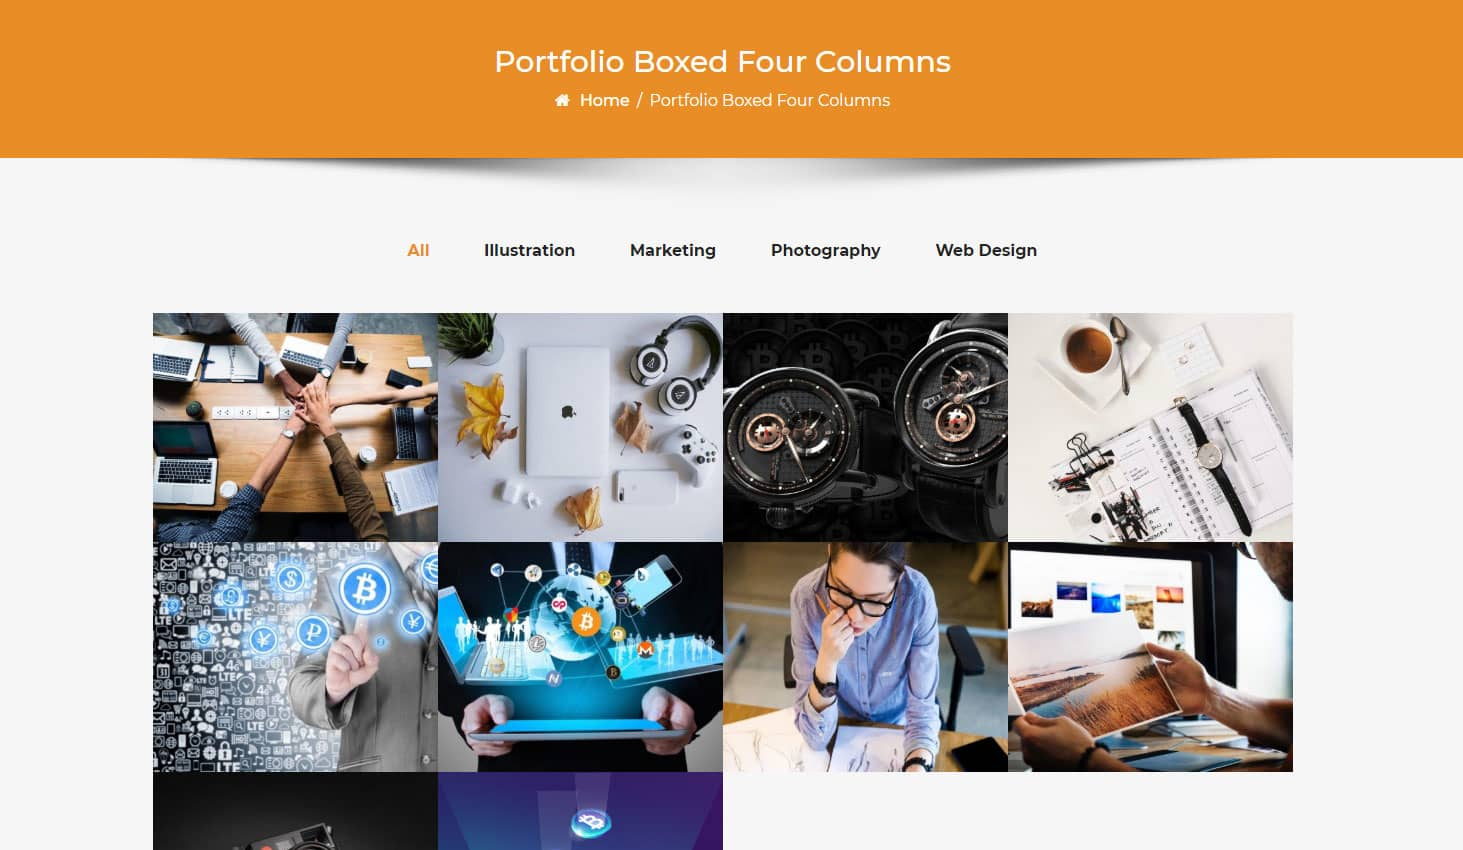 Crypto Premium WordPress Theme For Cryptocurrency Business and Blog Websites - A WP Life - Portfolio Boxed Four Column Layout Template